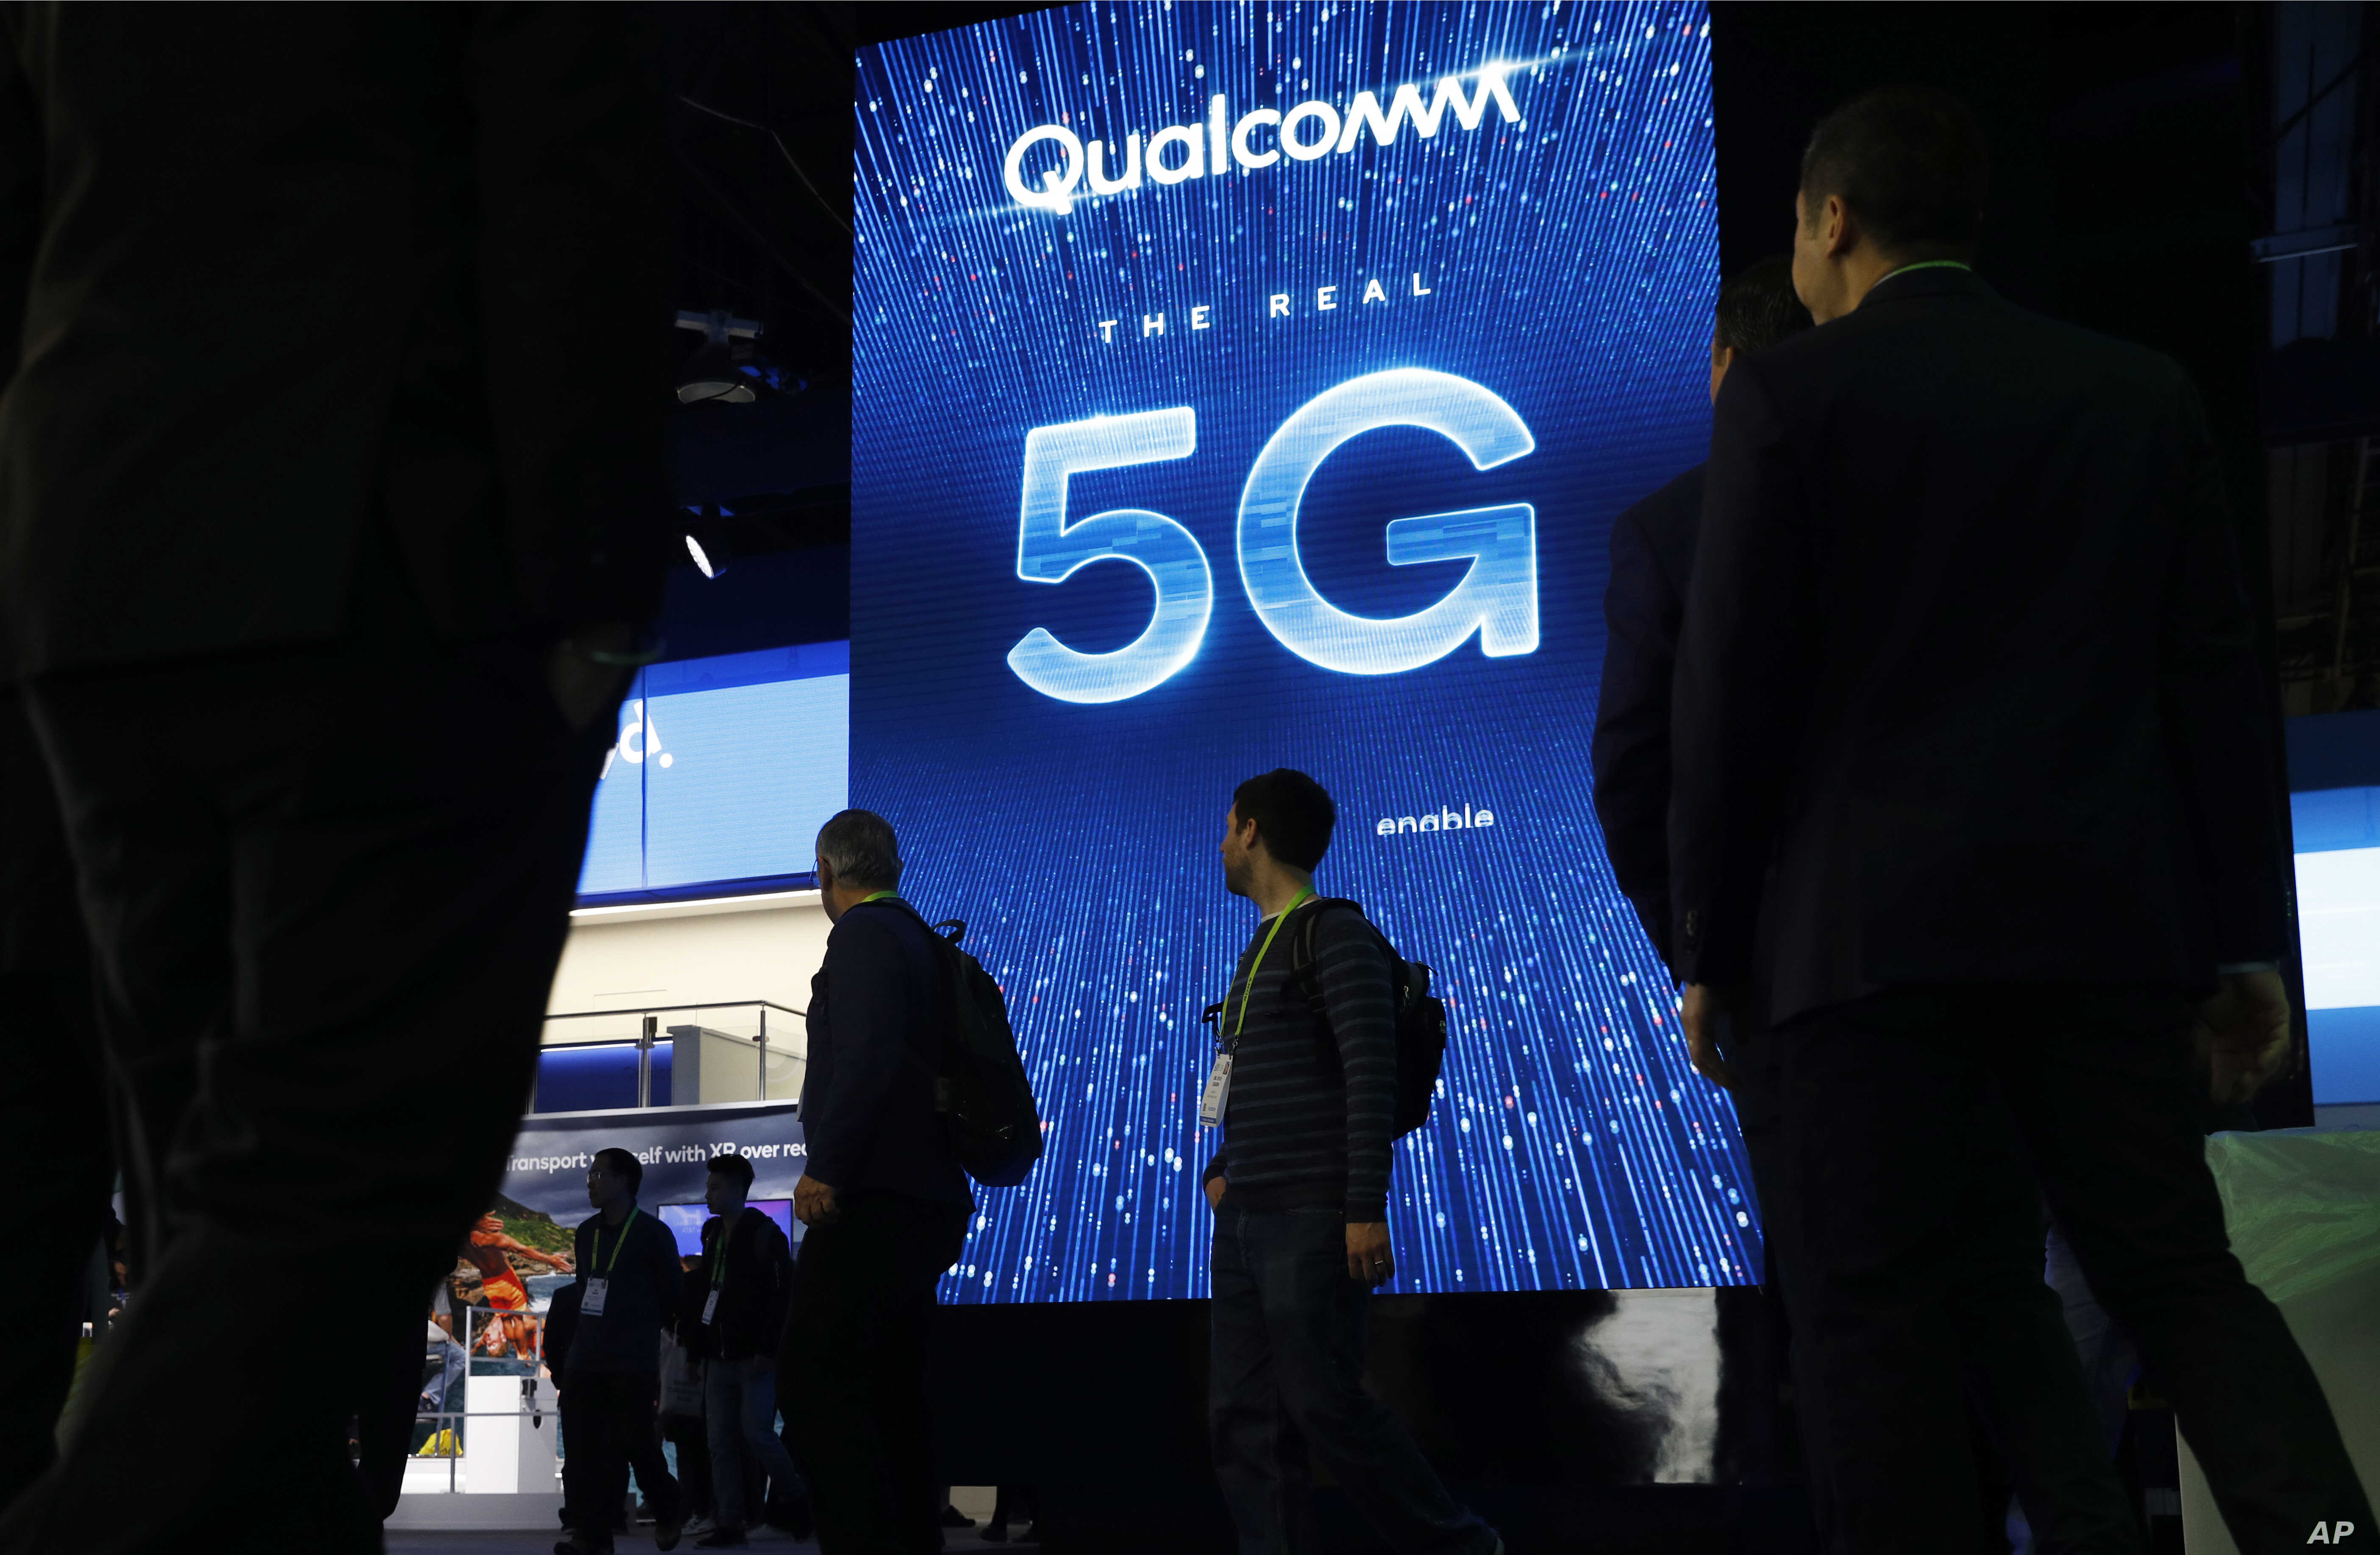 A sign advertises 5G at the Qualcomm booth at CES International, Wednesday, Jan. 9, 2019, in Las Vegas. (AP Photo/John Locher)